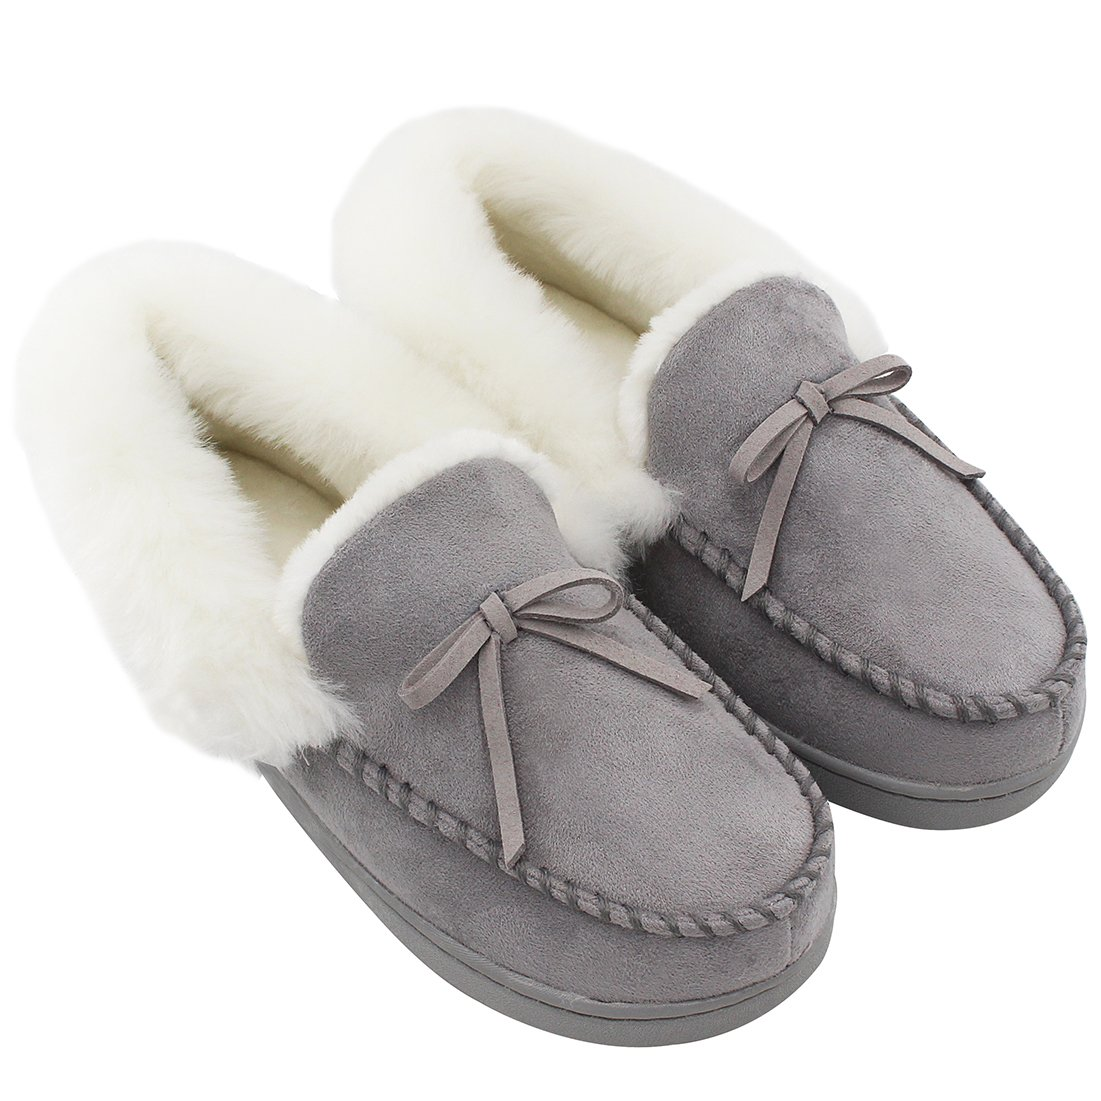 HomeIdeas Women's Faux Fur Lined Suede Comfort House Slippers, Anti-Slip Winter Indoor/Outdoor Moccasin Shoes (7 B(M) US, Gray)